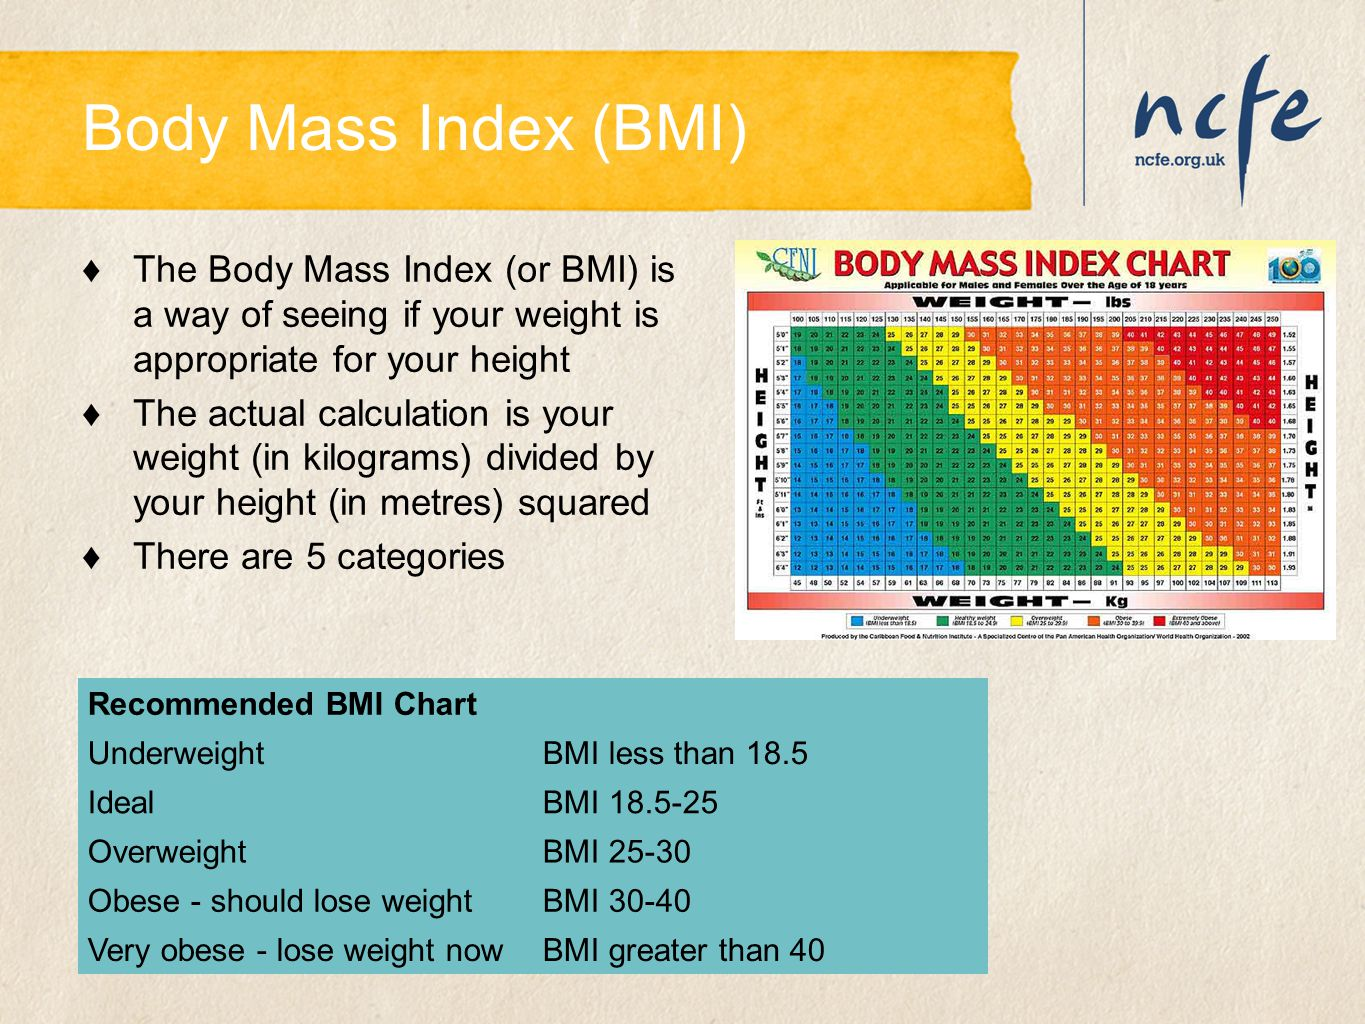 Body Mass Index (BMI) The Body Mass Index (or BMI) is a way of seeing if your weight is appropriate for your height.